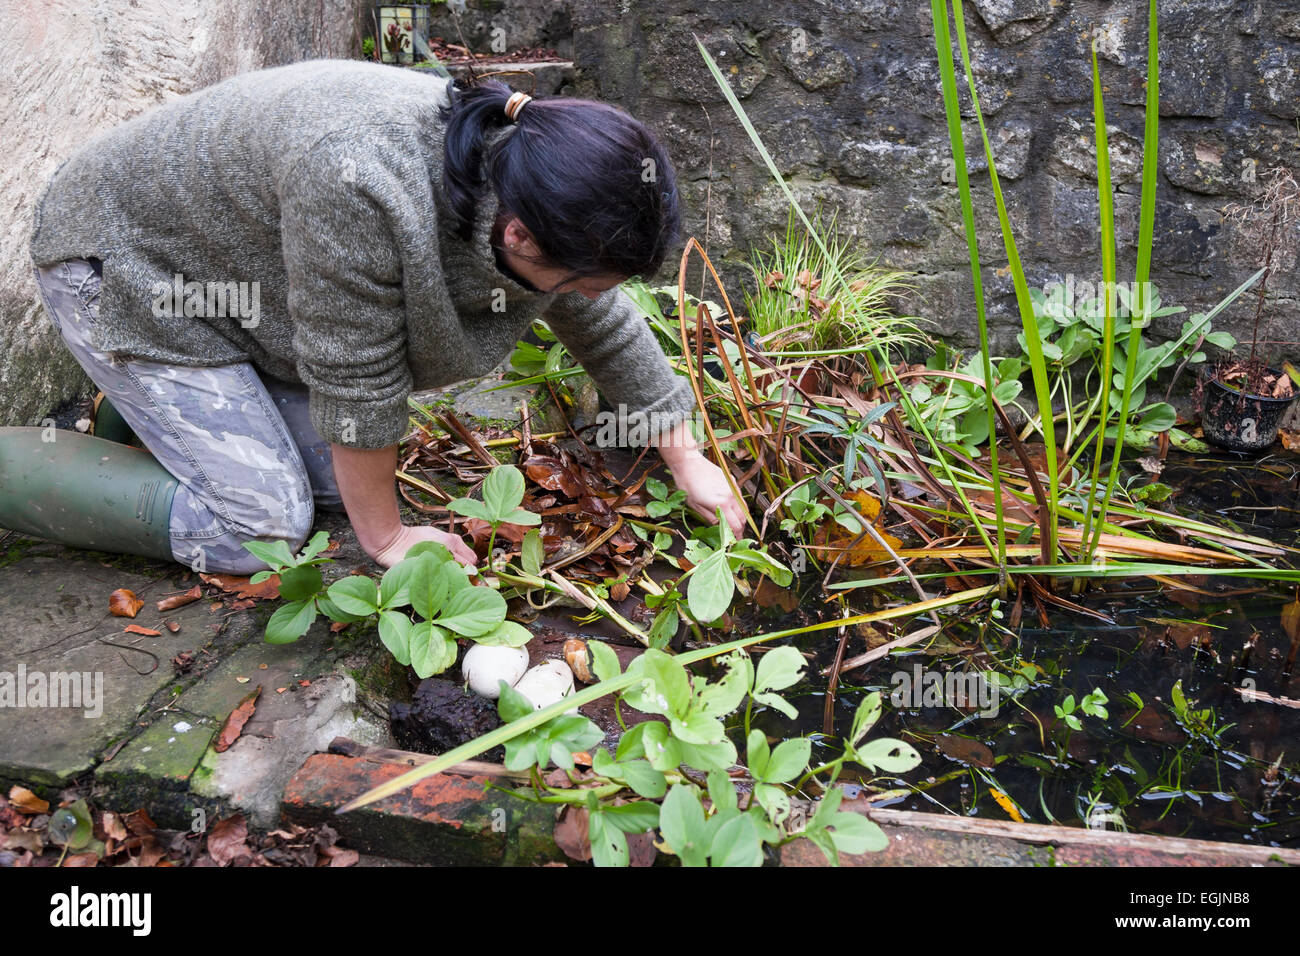 lady gardener in wellington boots kneeling while clearing autumn weeds and leaves from overgrown pond - Stock Image